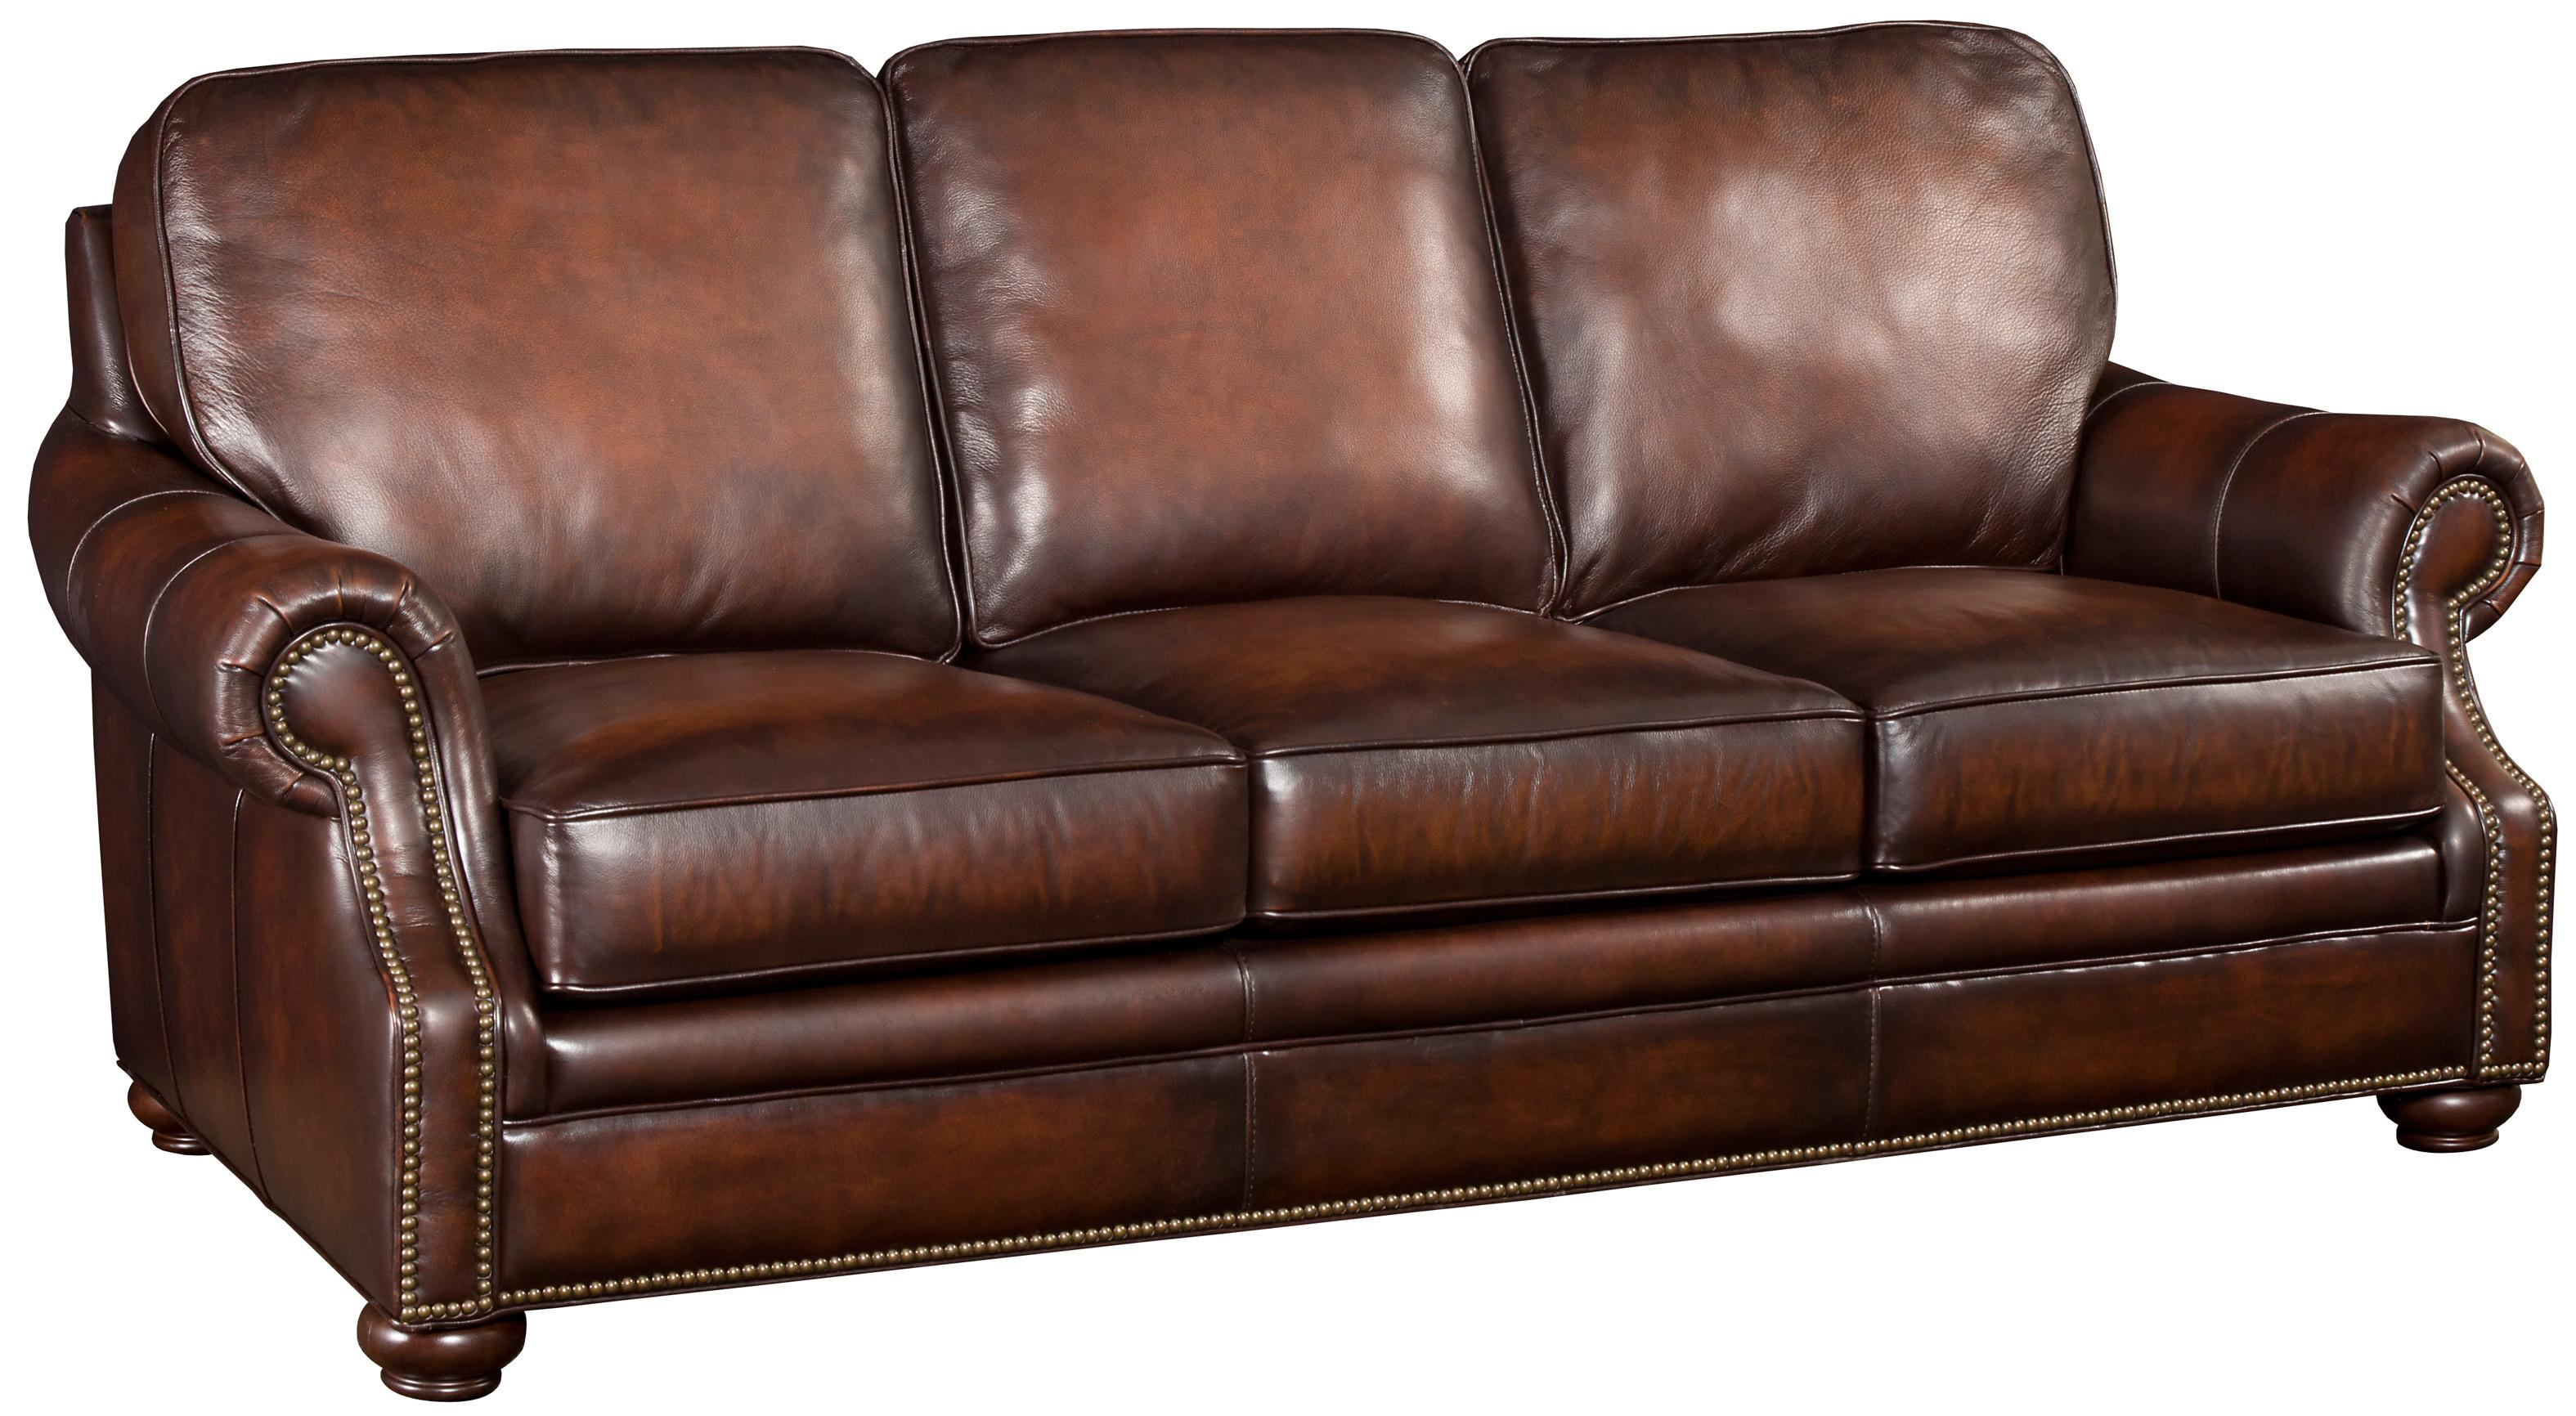 wood sofa furniture photos 66 hooker ss185 brown leather with